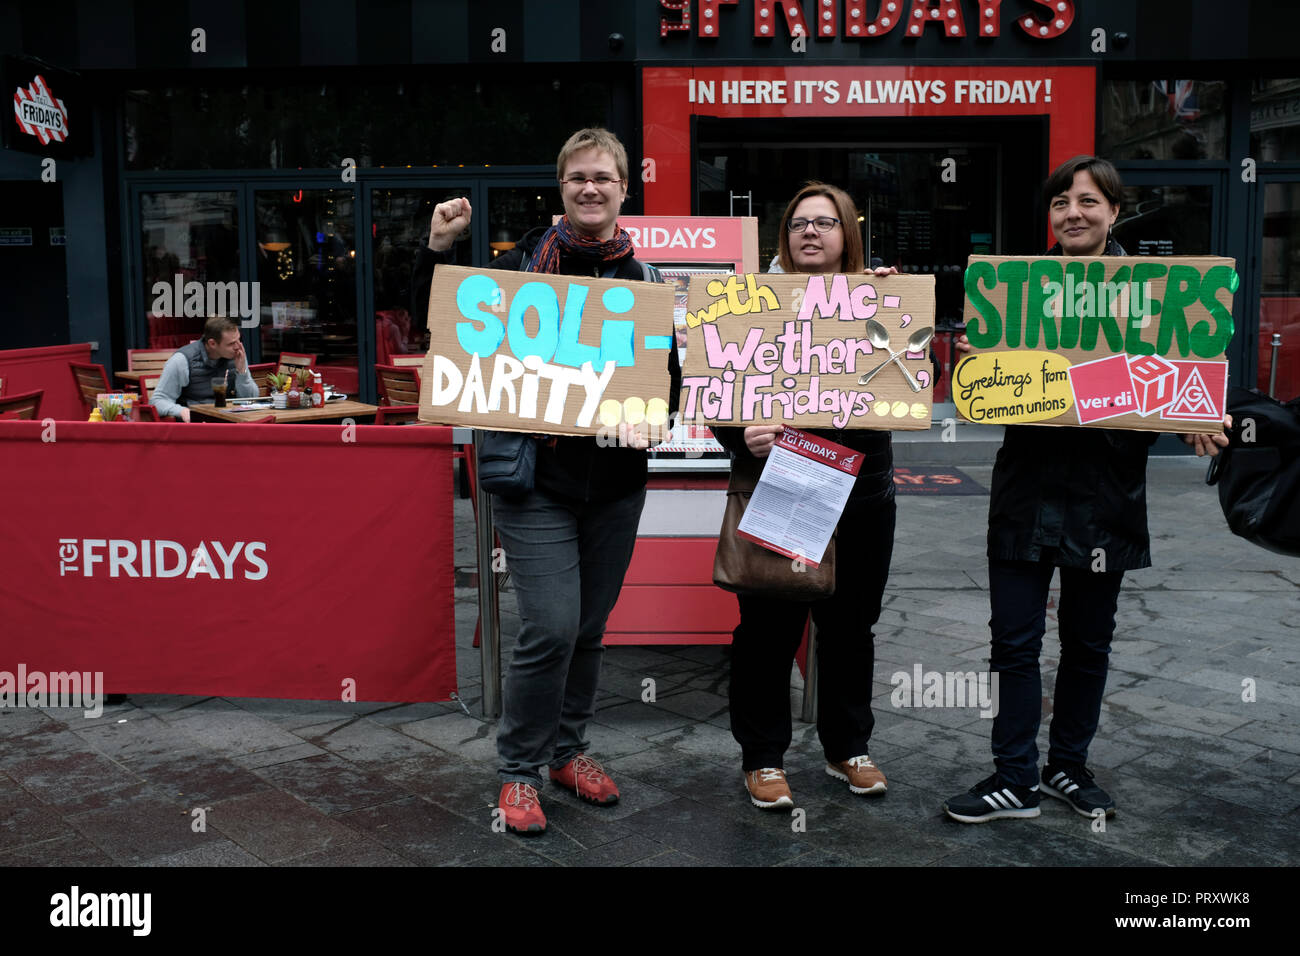 Protesters seen holding posters in front of a TGI Fridays during the protest. Wetherspoons, TGI Fridays, and McDonald's workers rally together in London to demand better working conditions and a fair pay in the hospitality industry. - Stock Image